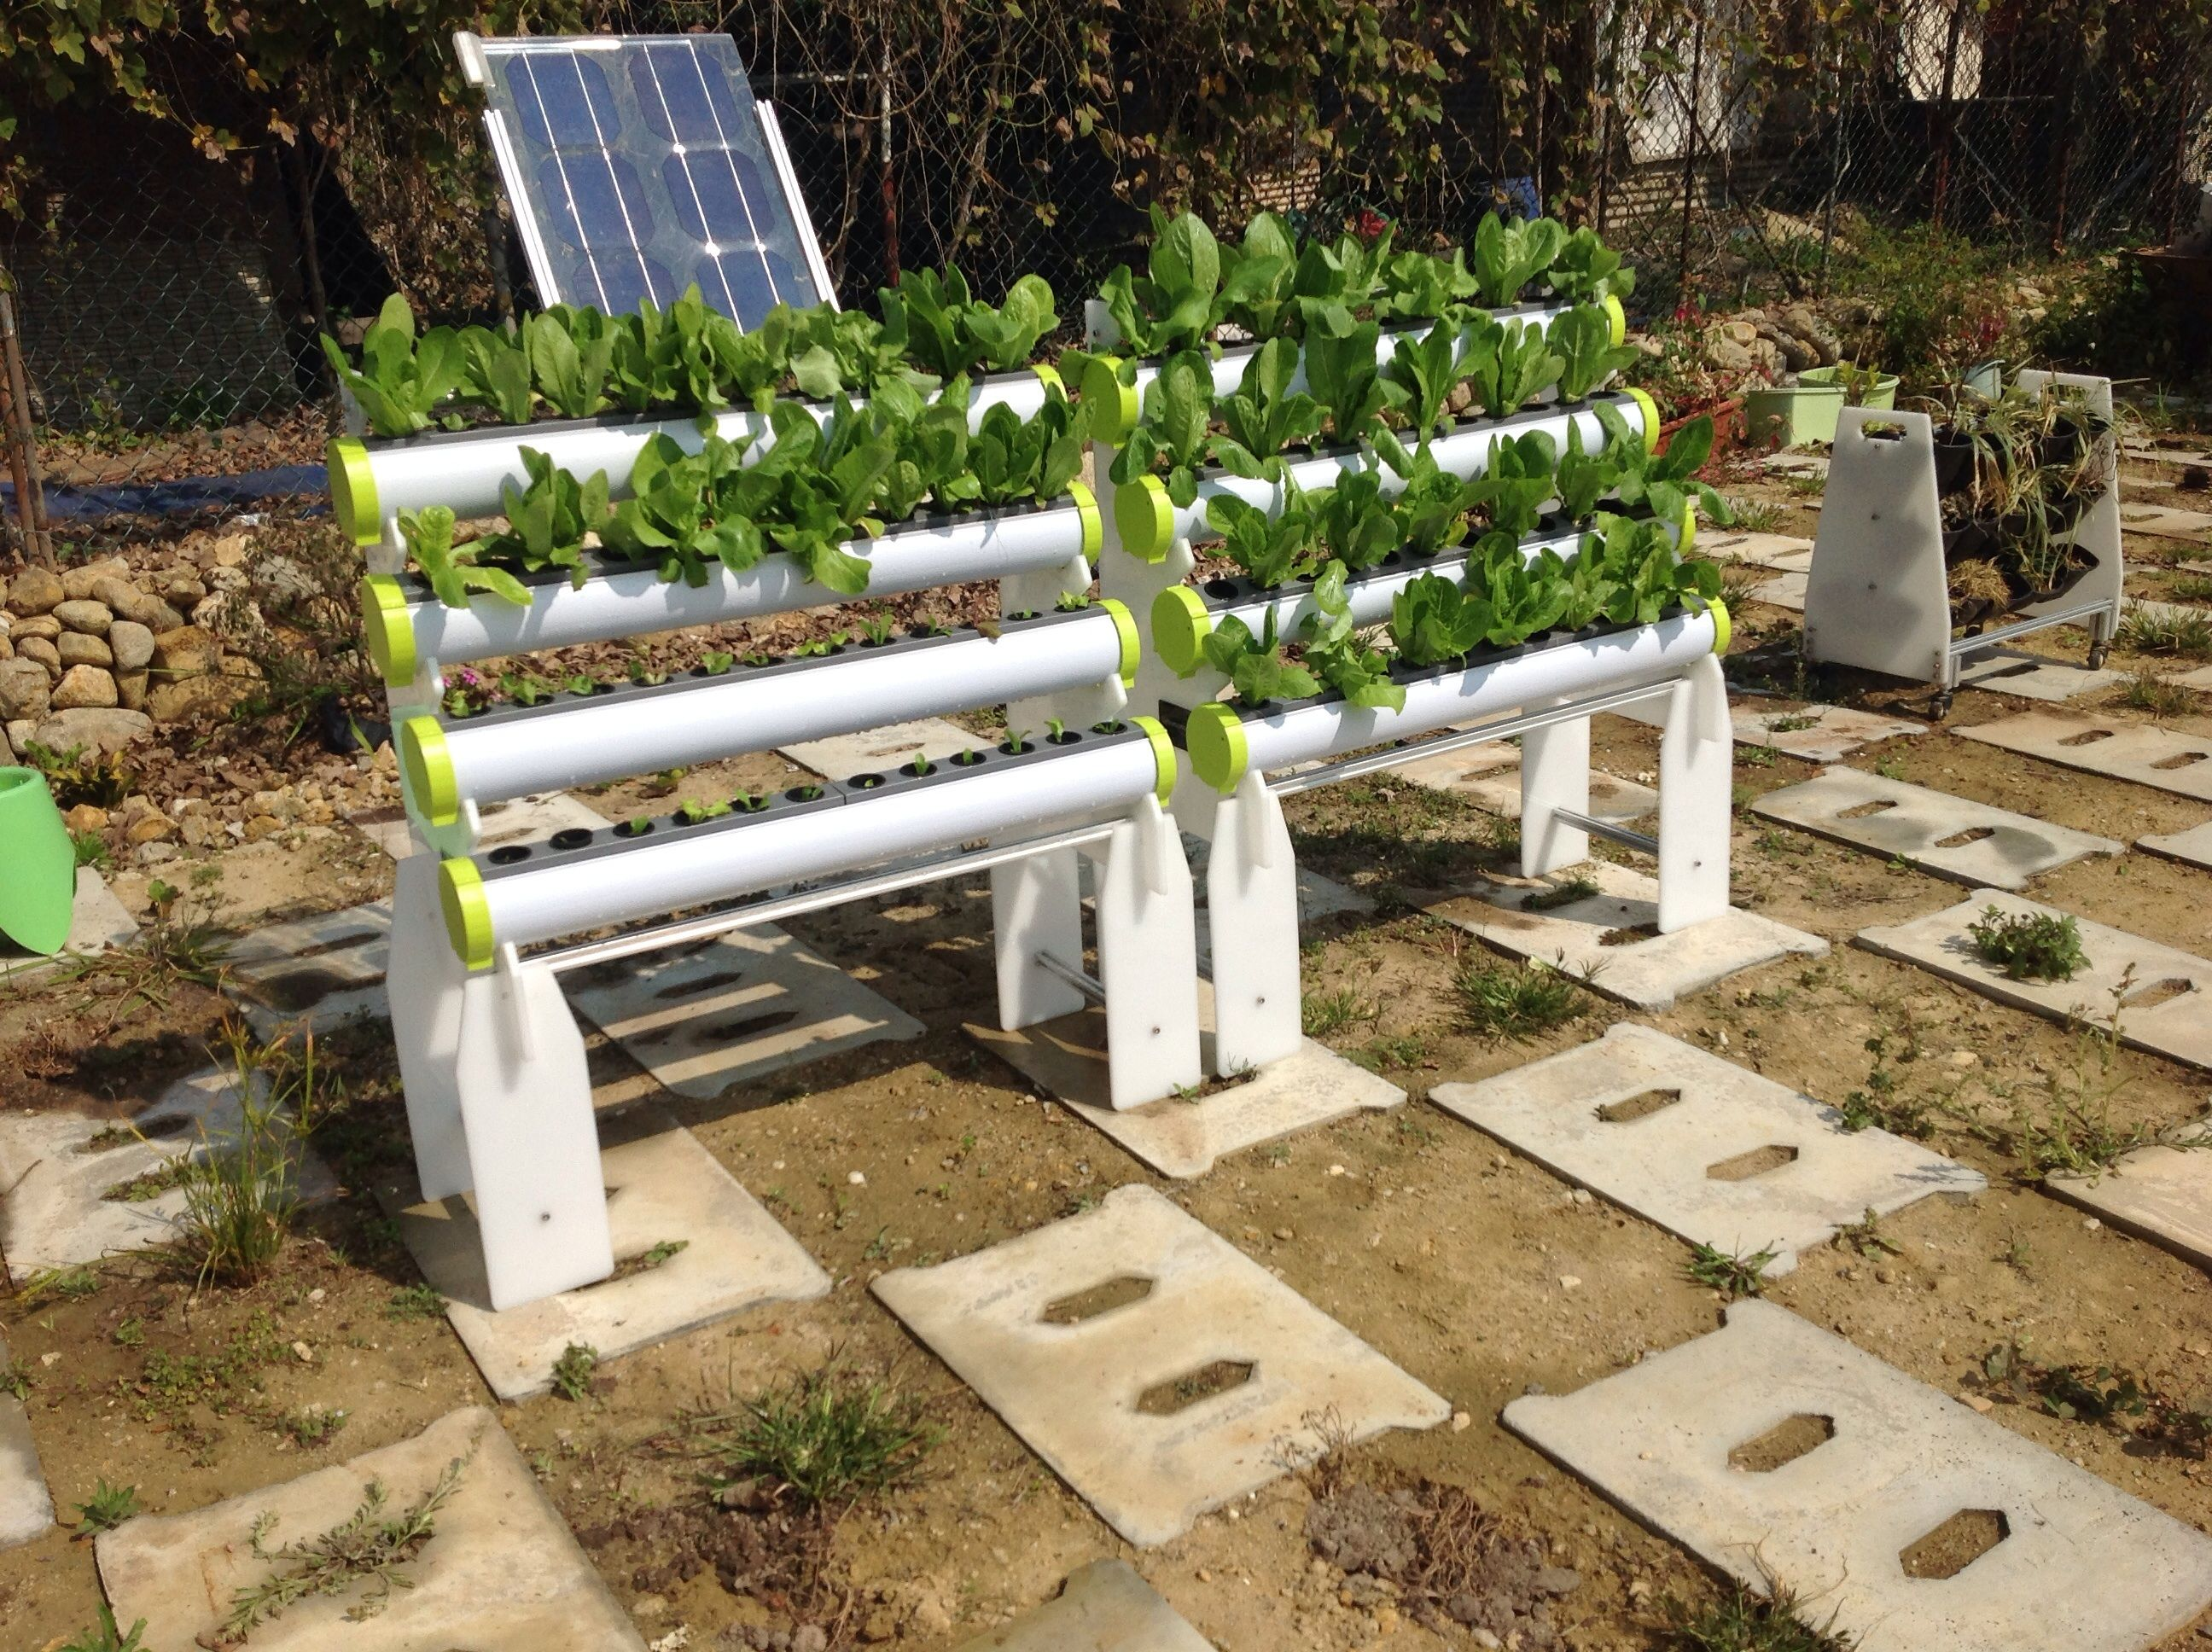 An Integrated Hydroponics System, inclusive of mobile rack